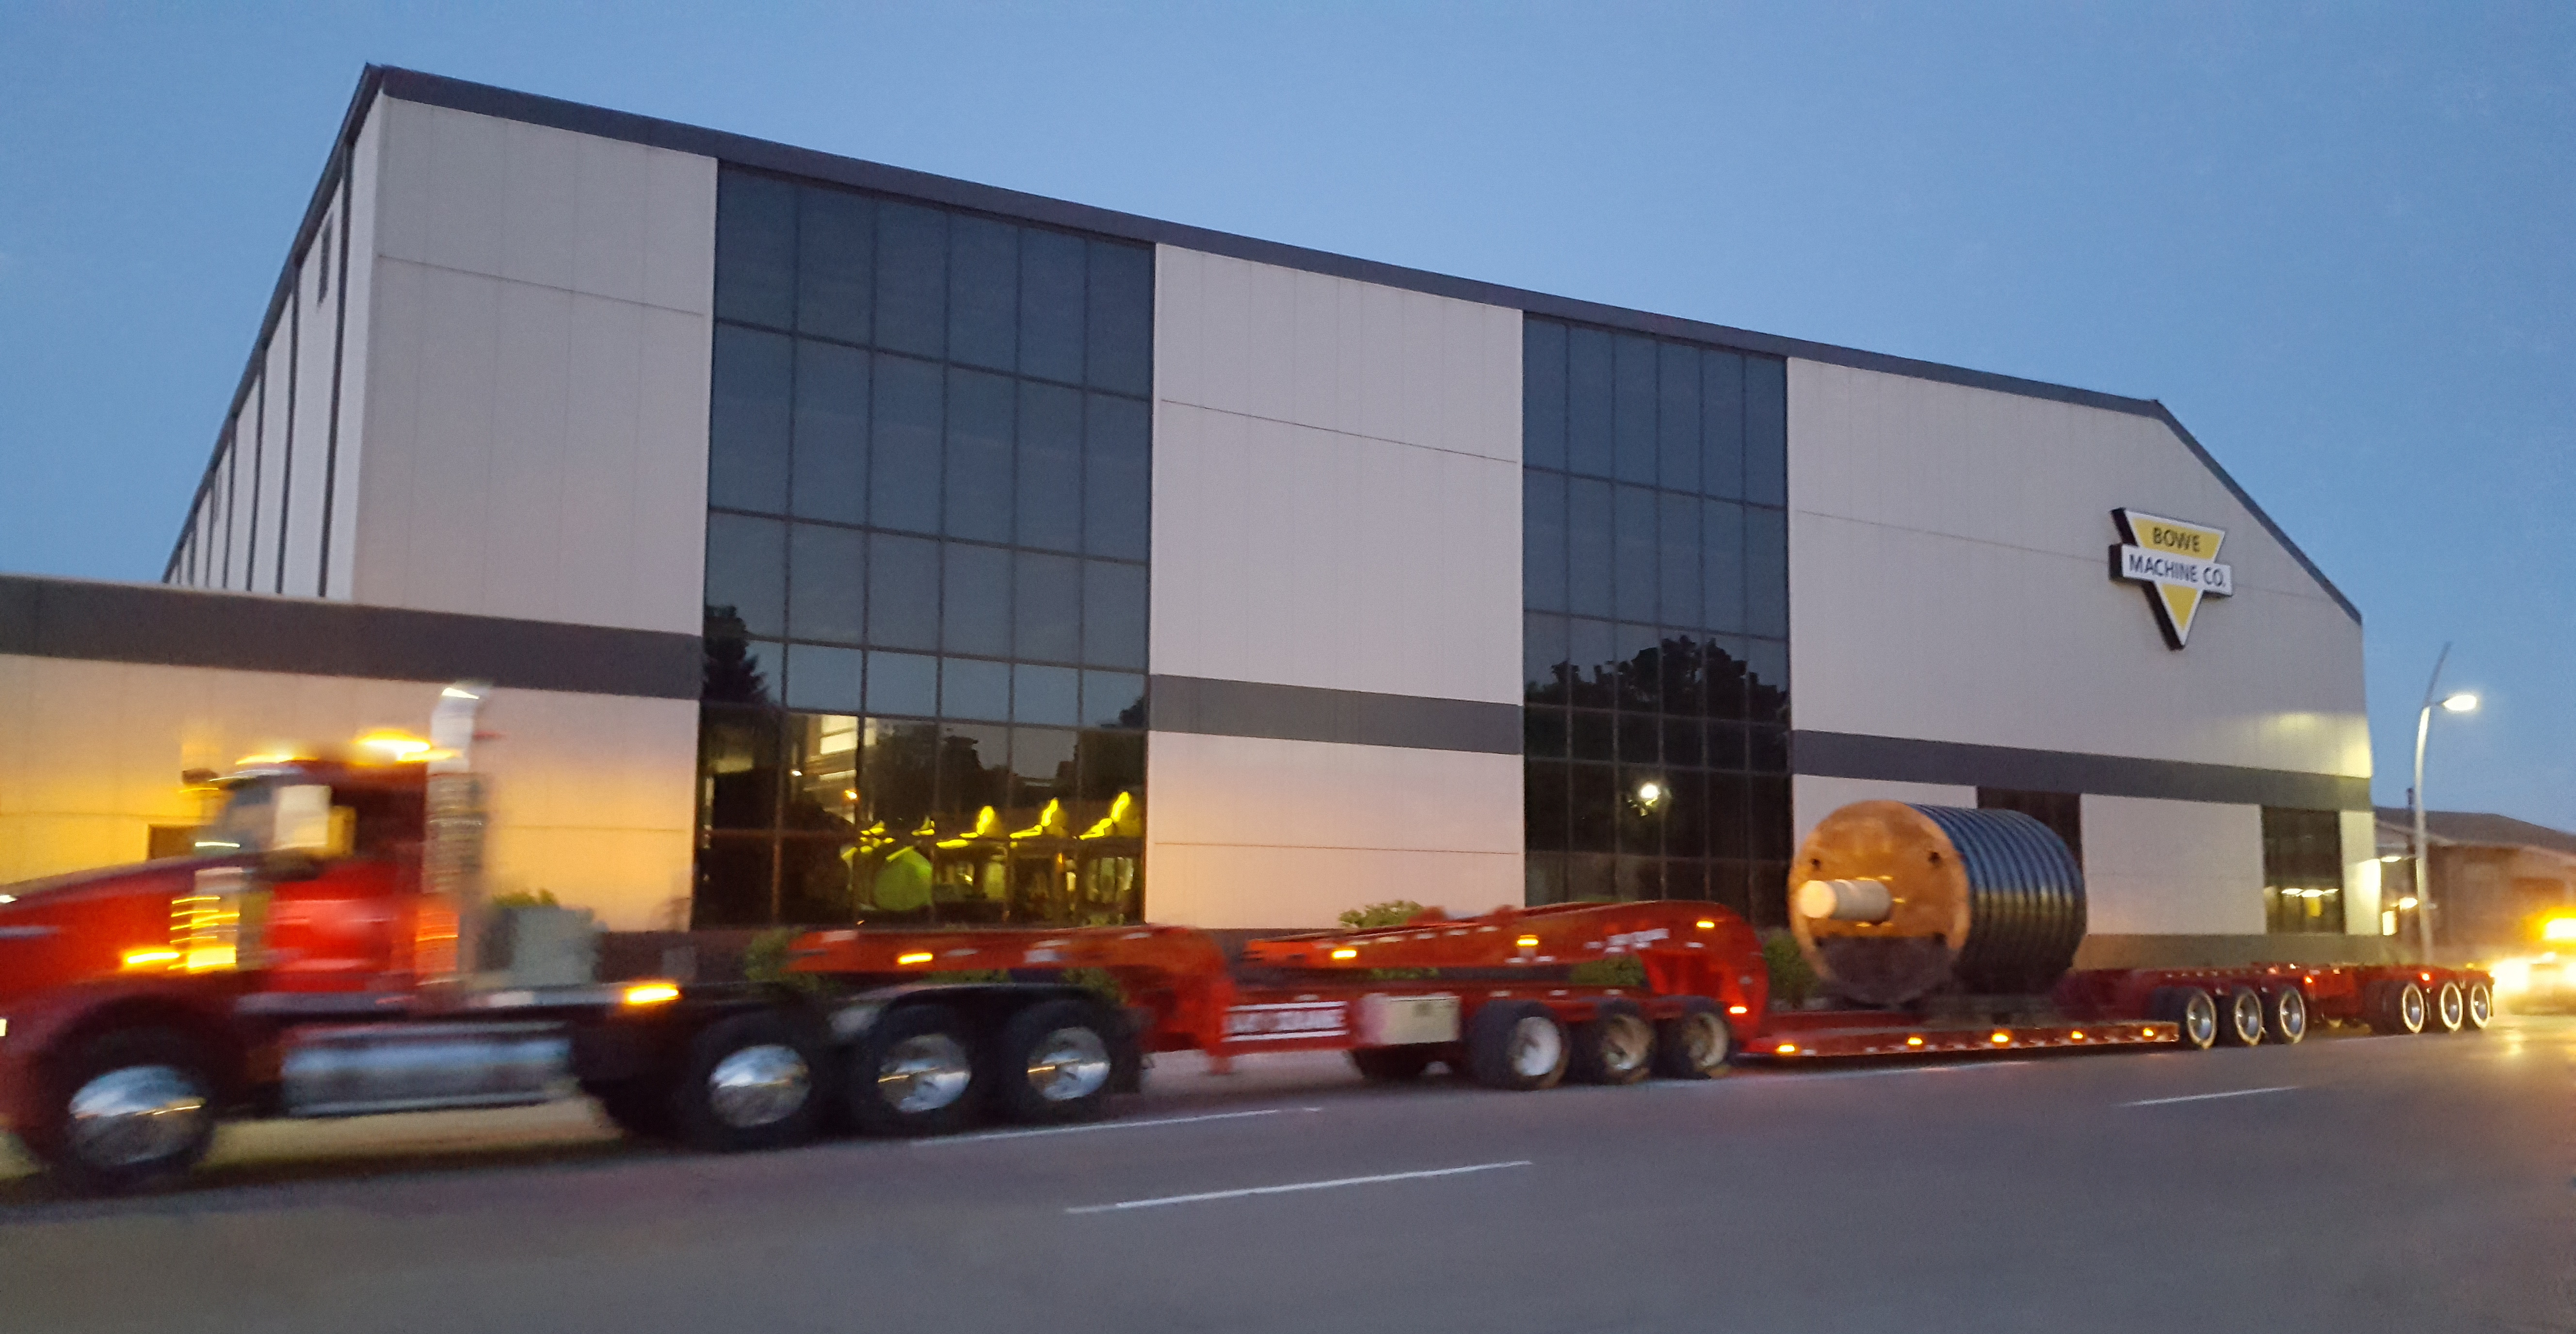 160,00 Disc Rotor shipping out on a 130-foot-long truck